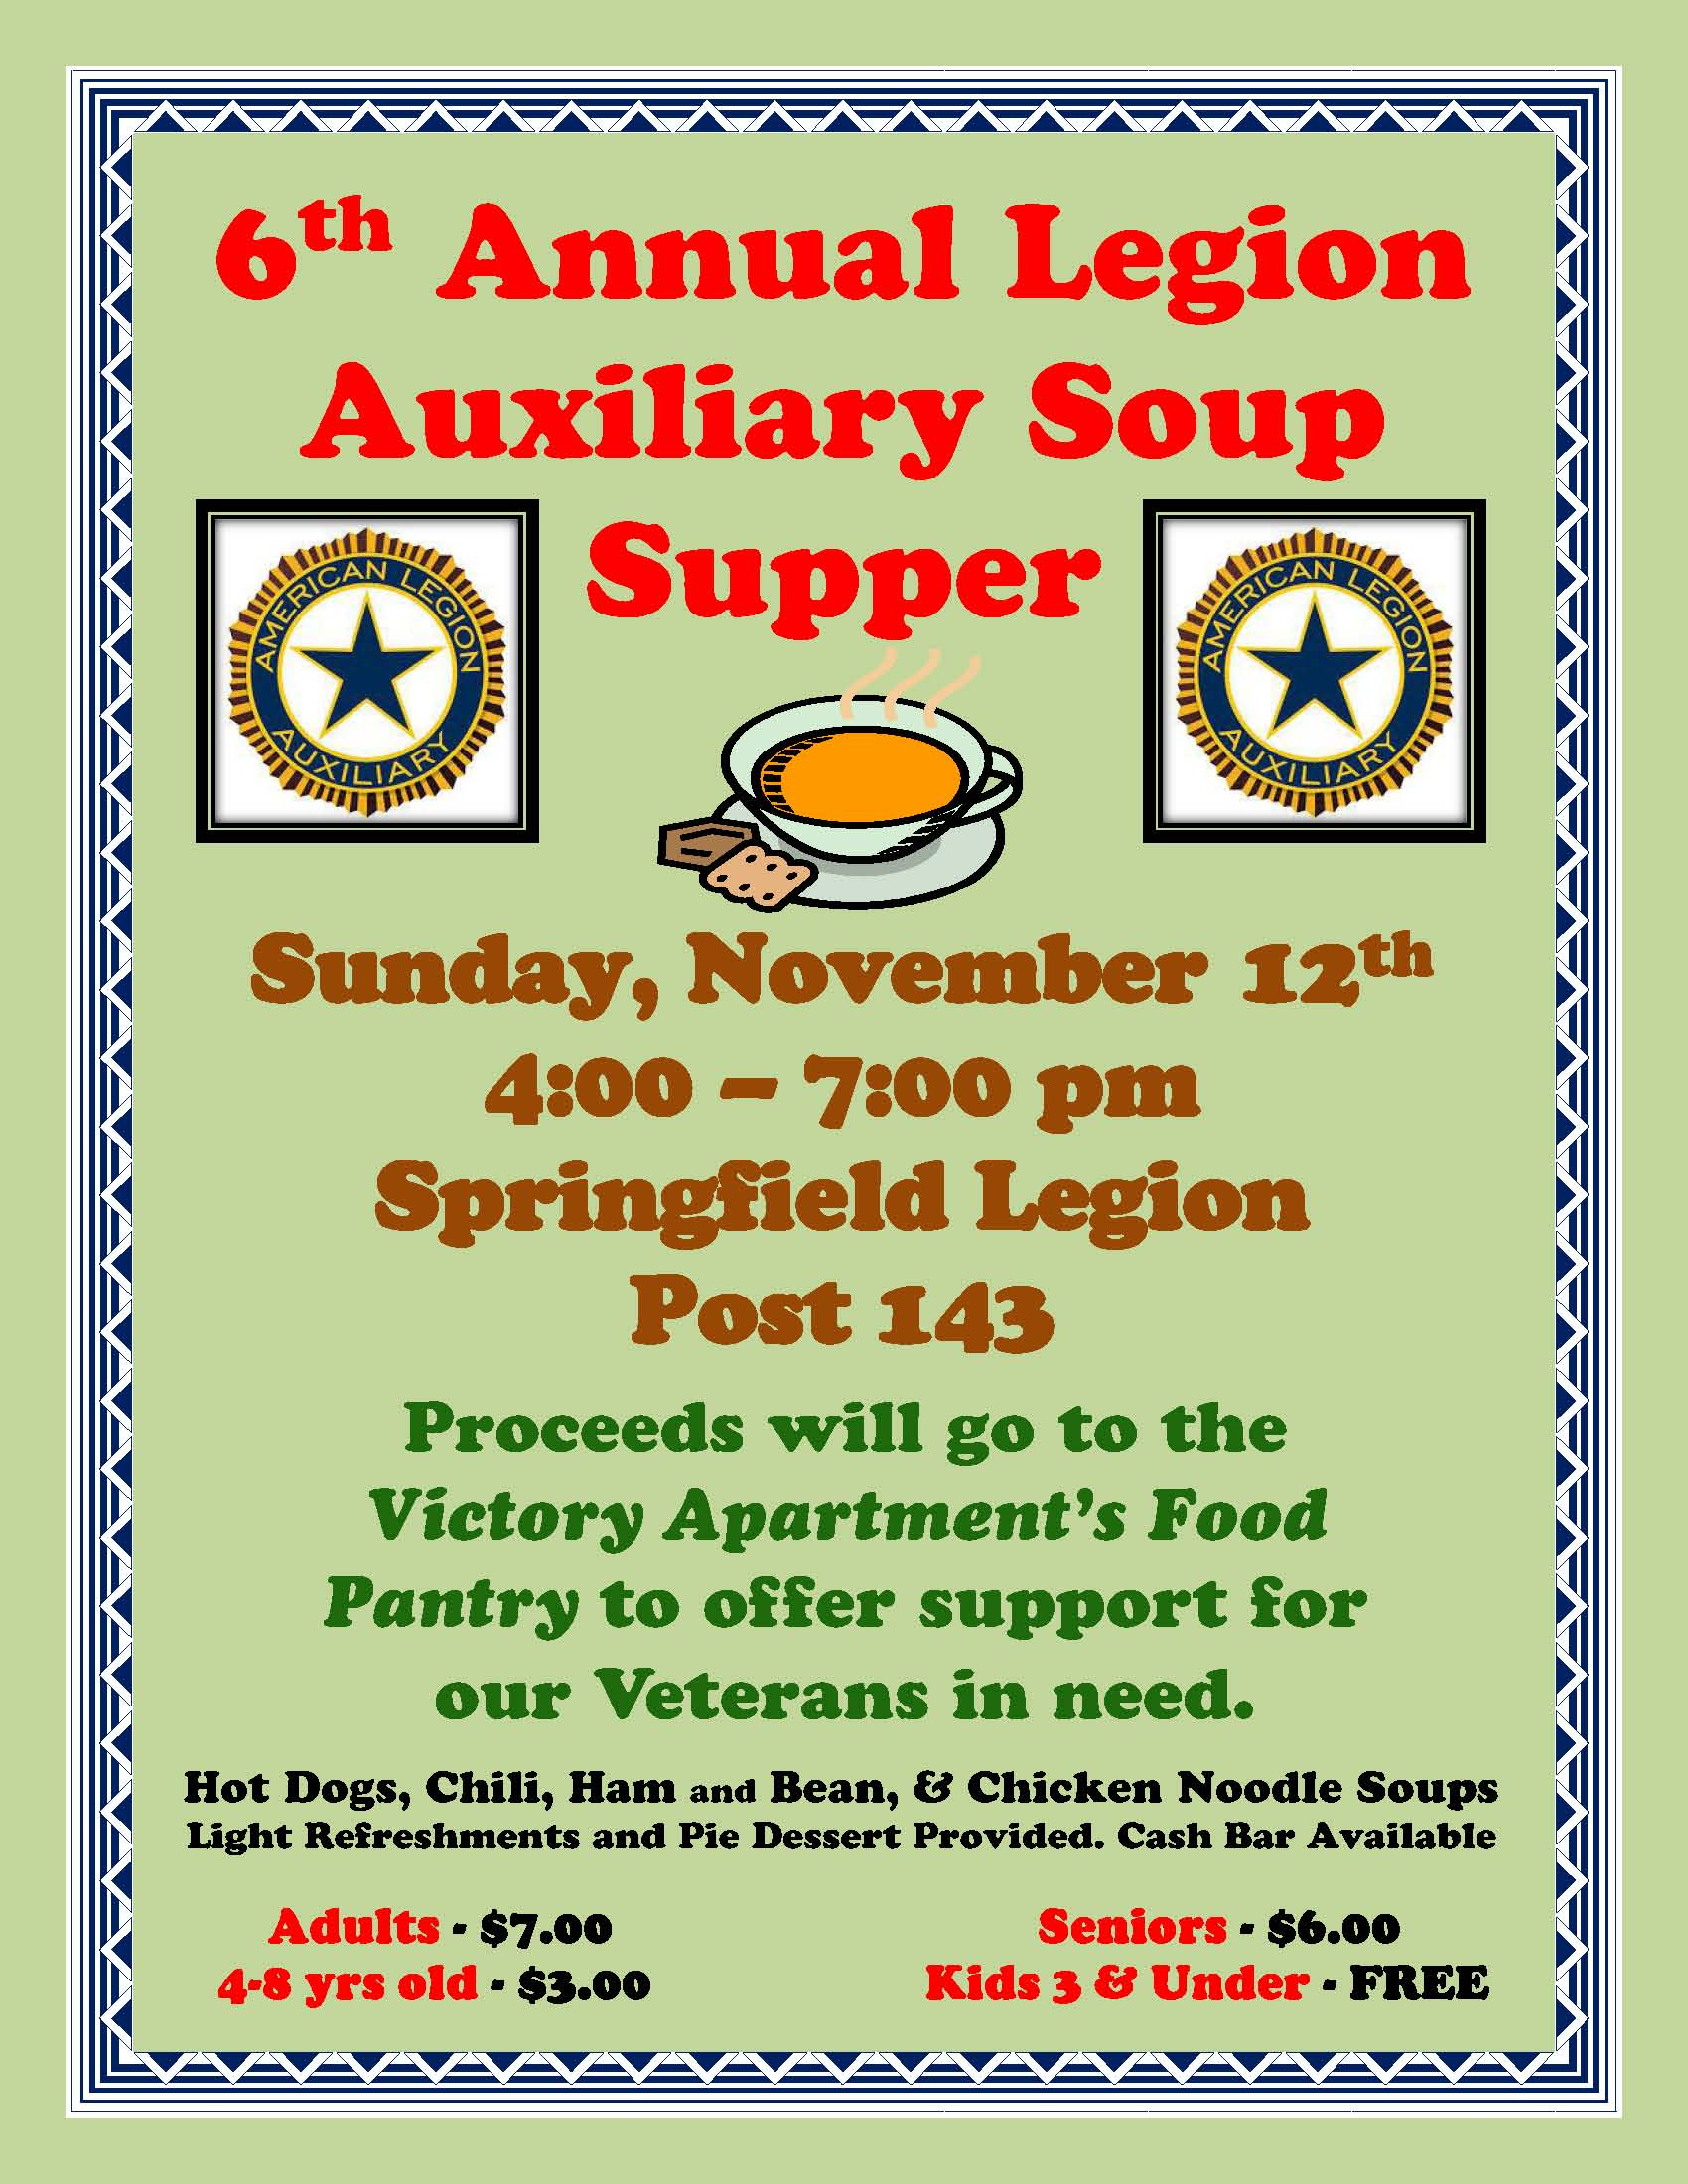 Soup Supper Flyer